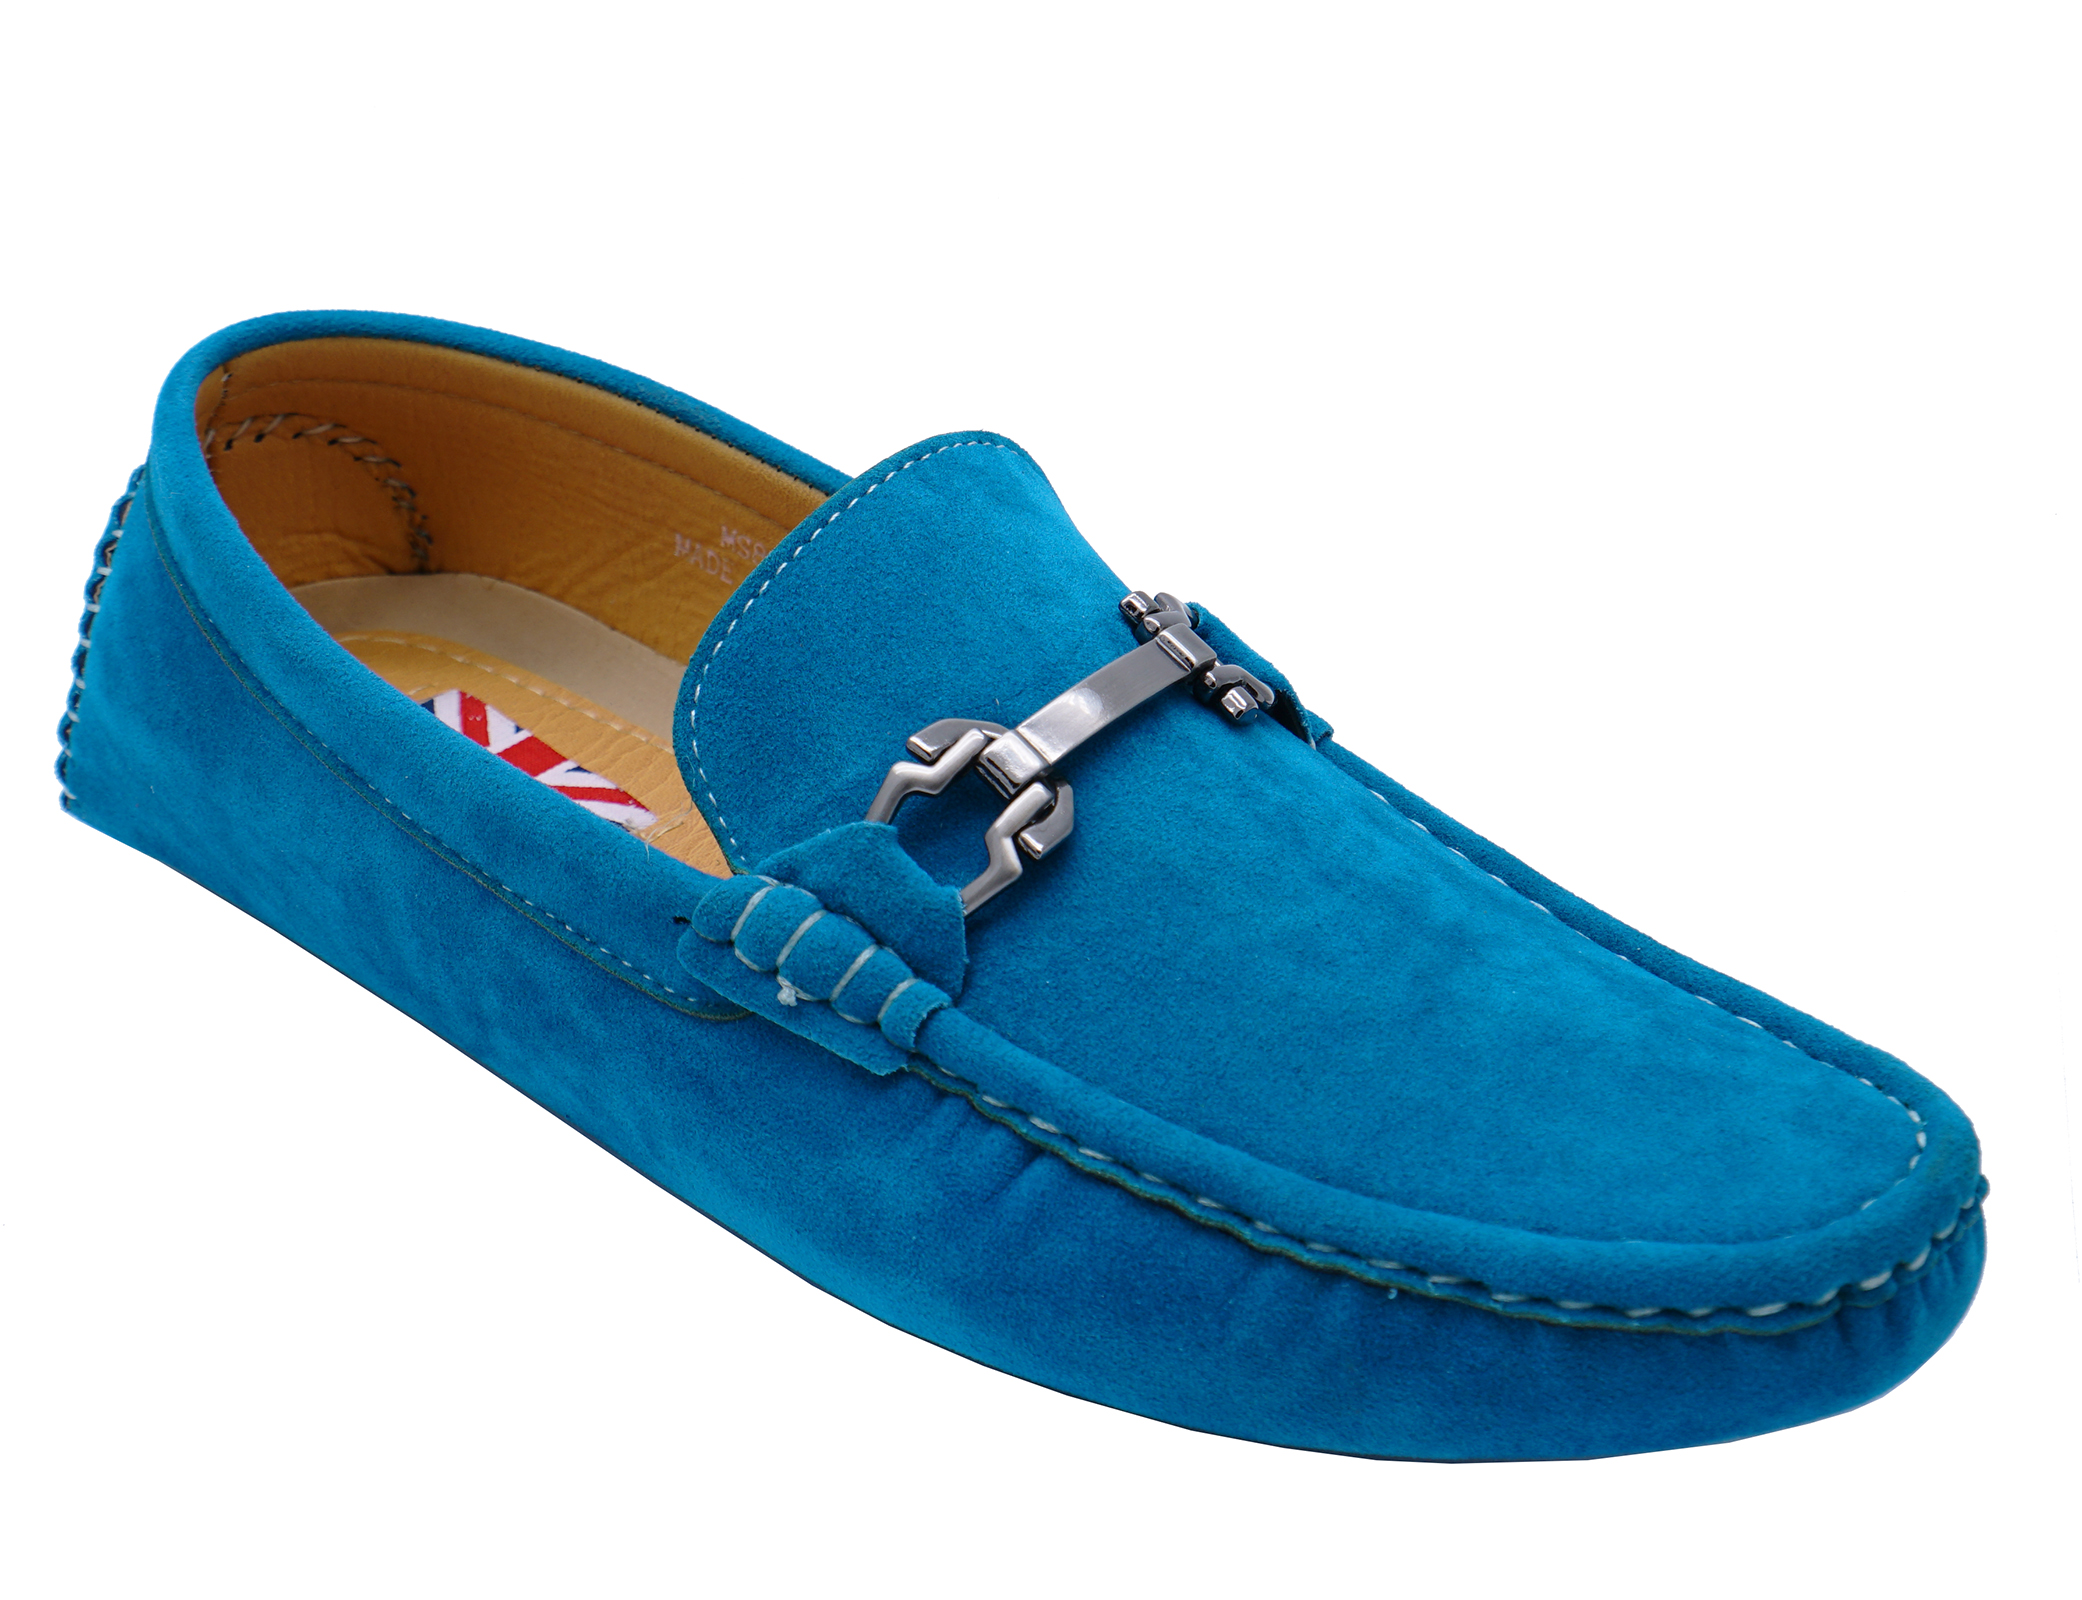 0544e8871cbcd8 Sentinel MENS FLAT SLIP-ON DRIVING SMART CASUAL BLUE LOAFERS DECK SHOES  MOCASSINS UK 6-